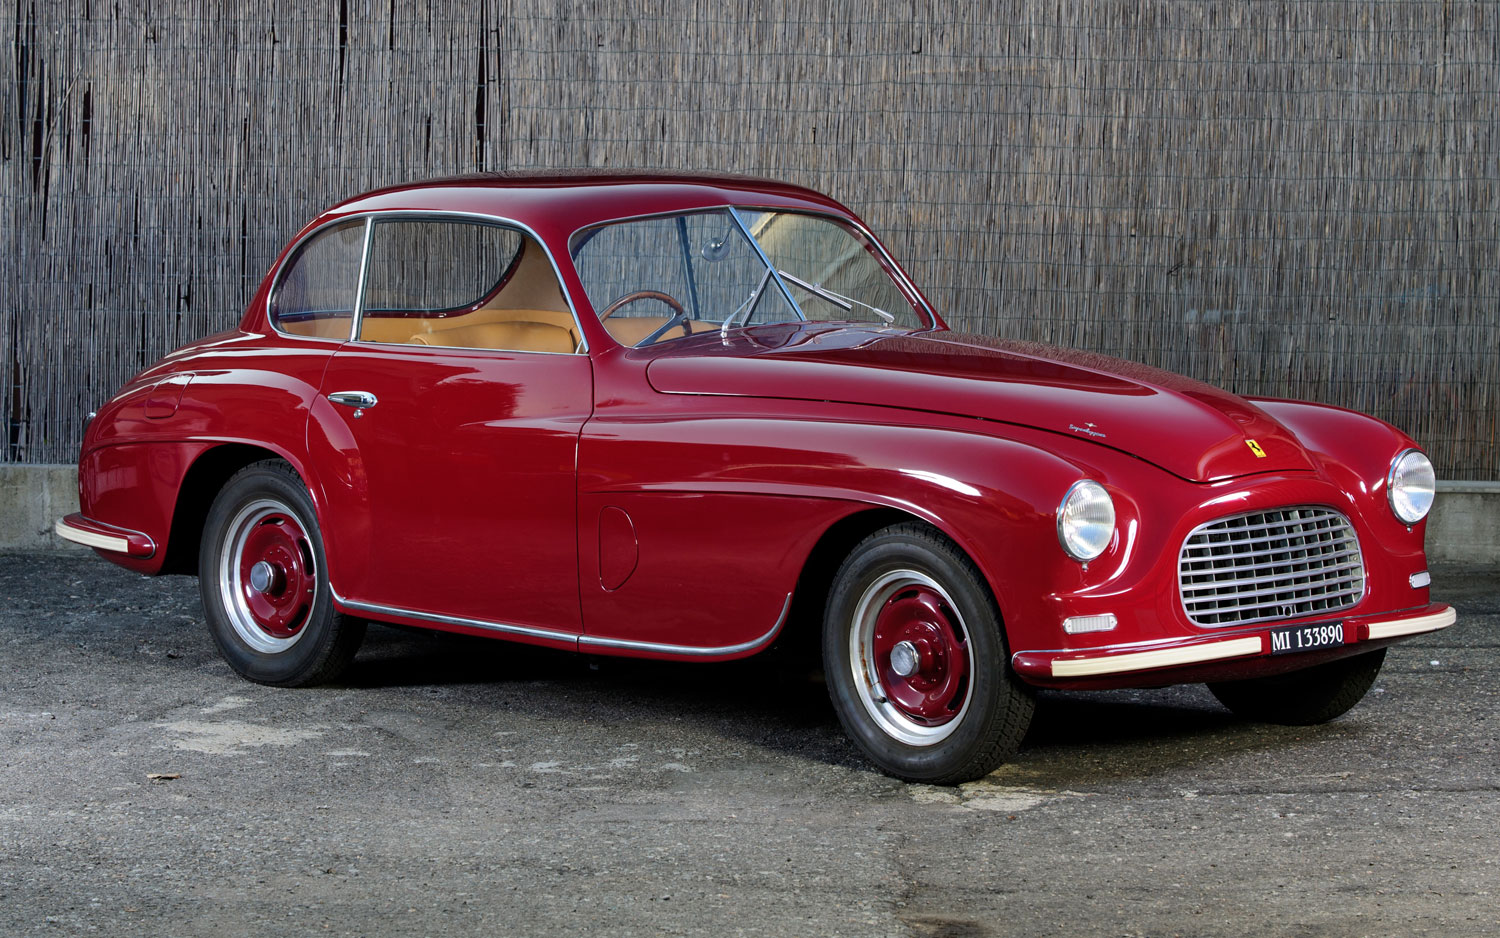 vintage ferrari 166 inter, 206 s, 625 trc heading to rm auctions